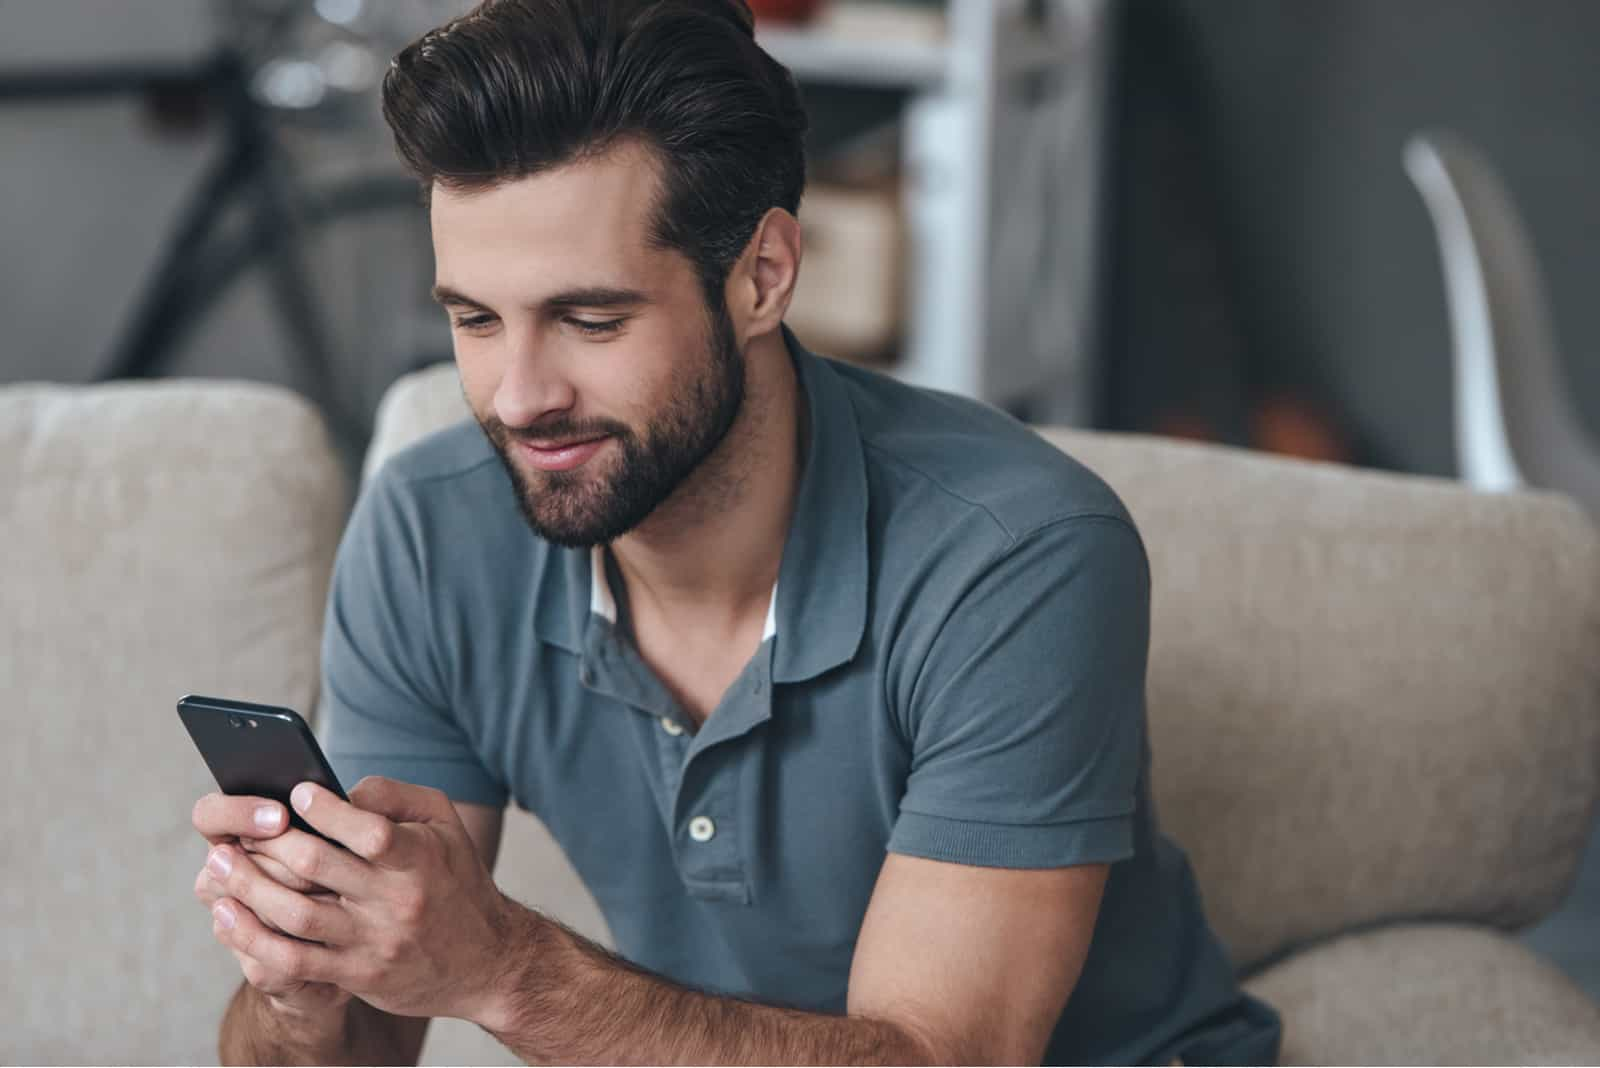 a smiling man sitting on a couch with a phone in his hand